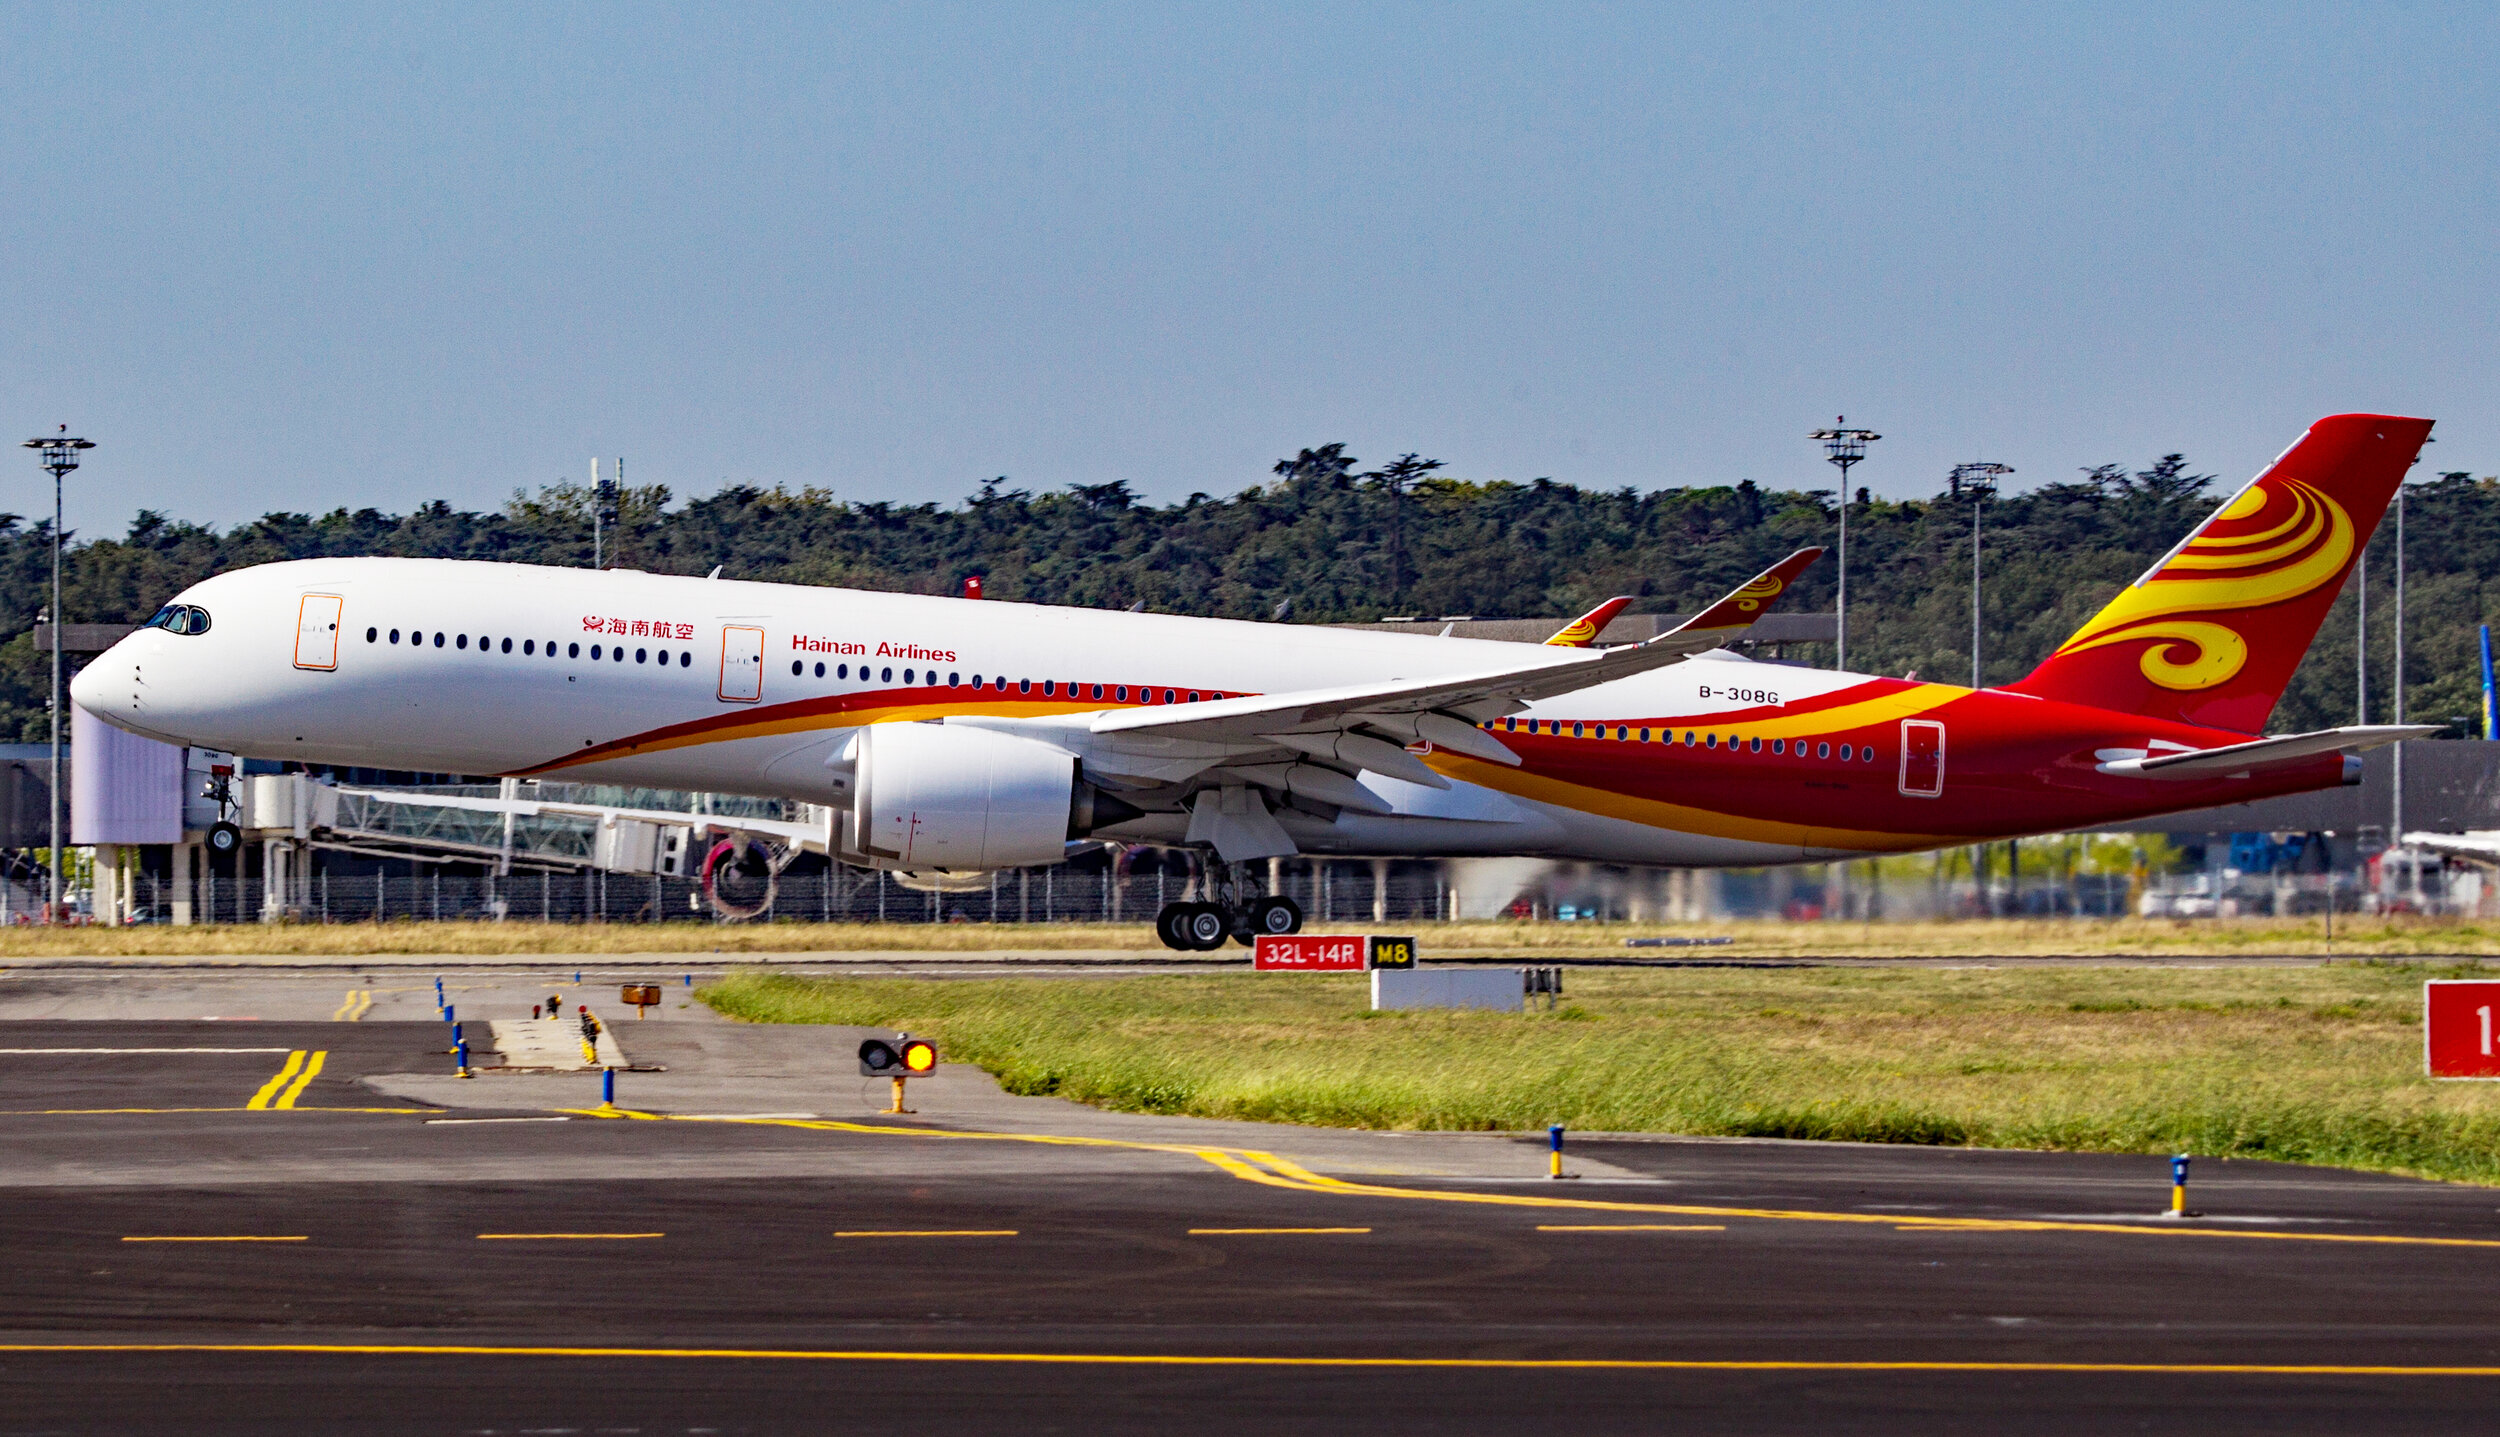 Hainans A350-900 B-308G departing for a test flight at Toulouse Blagnac on 19th September. Photo: Debbie Riley